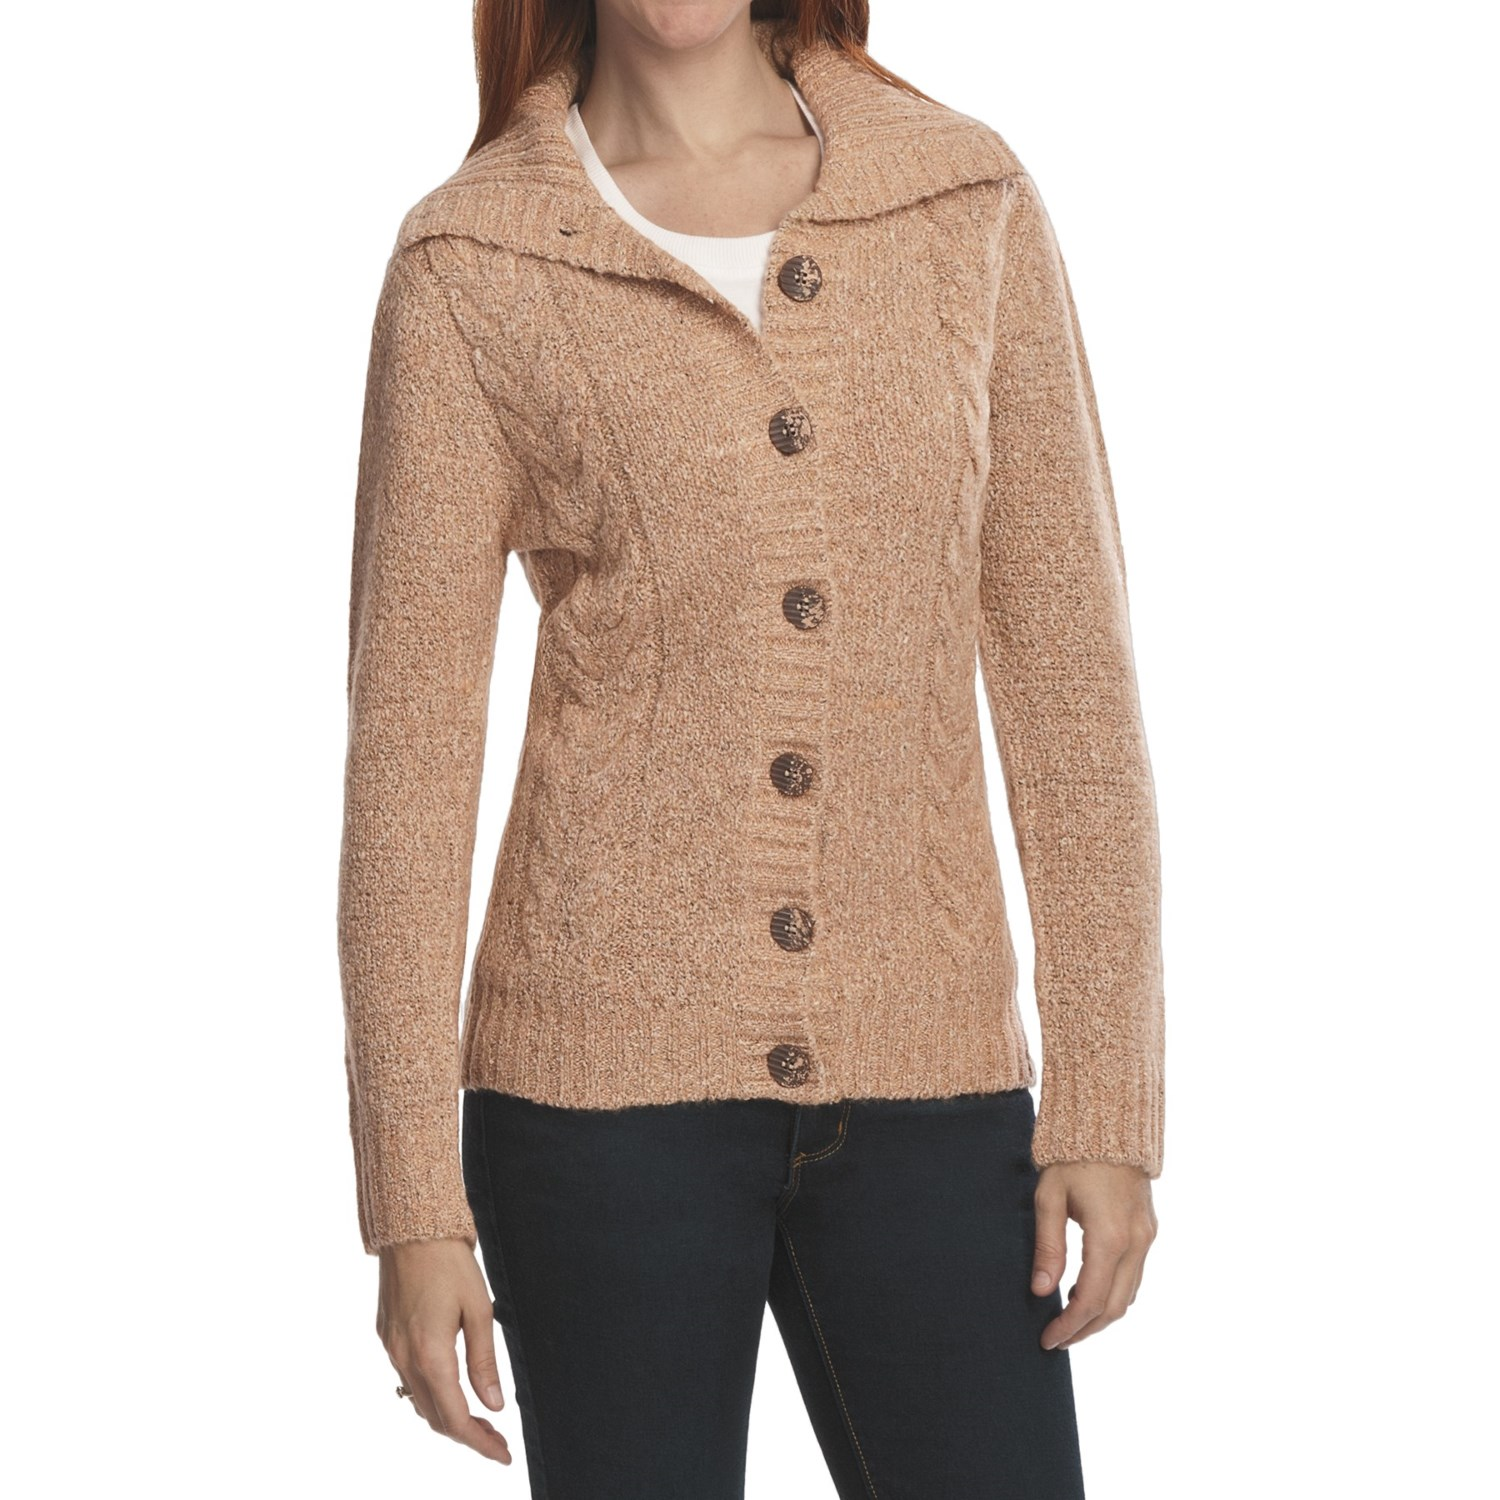 Women'S Cardigan Sale - English Sweater Vest